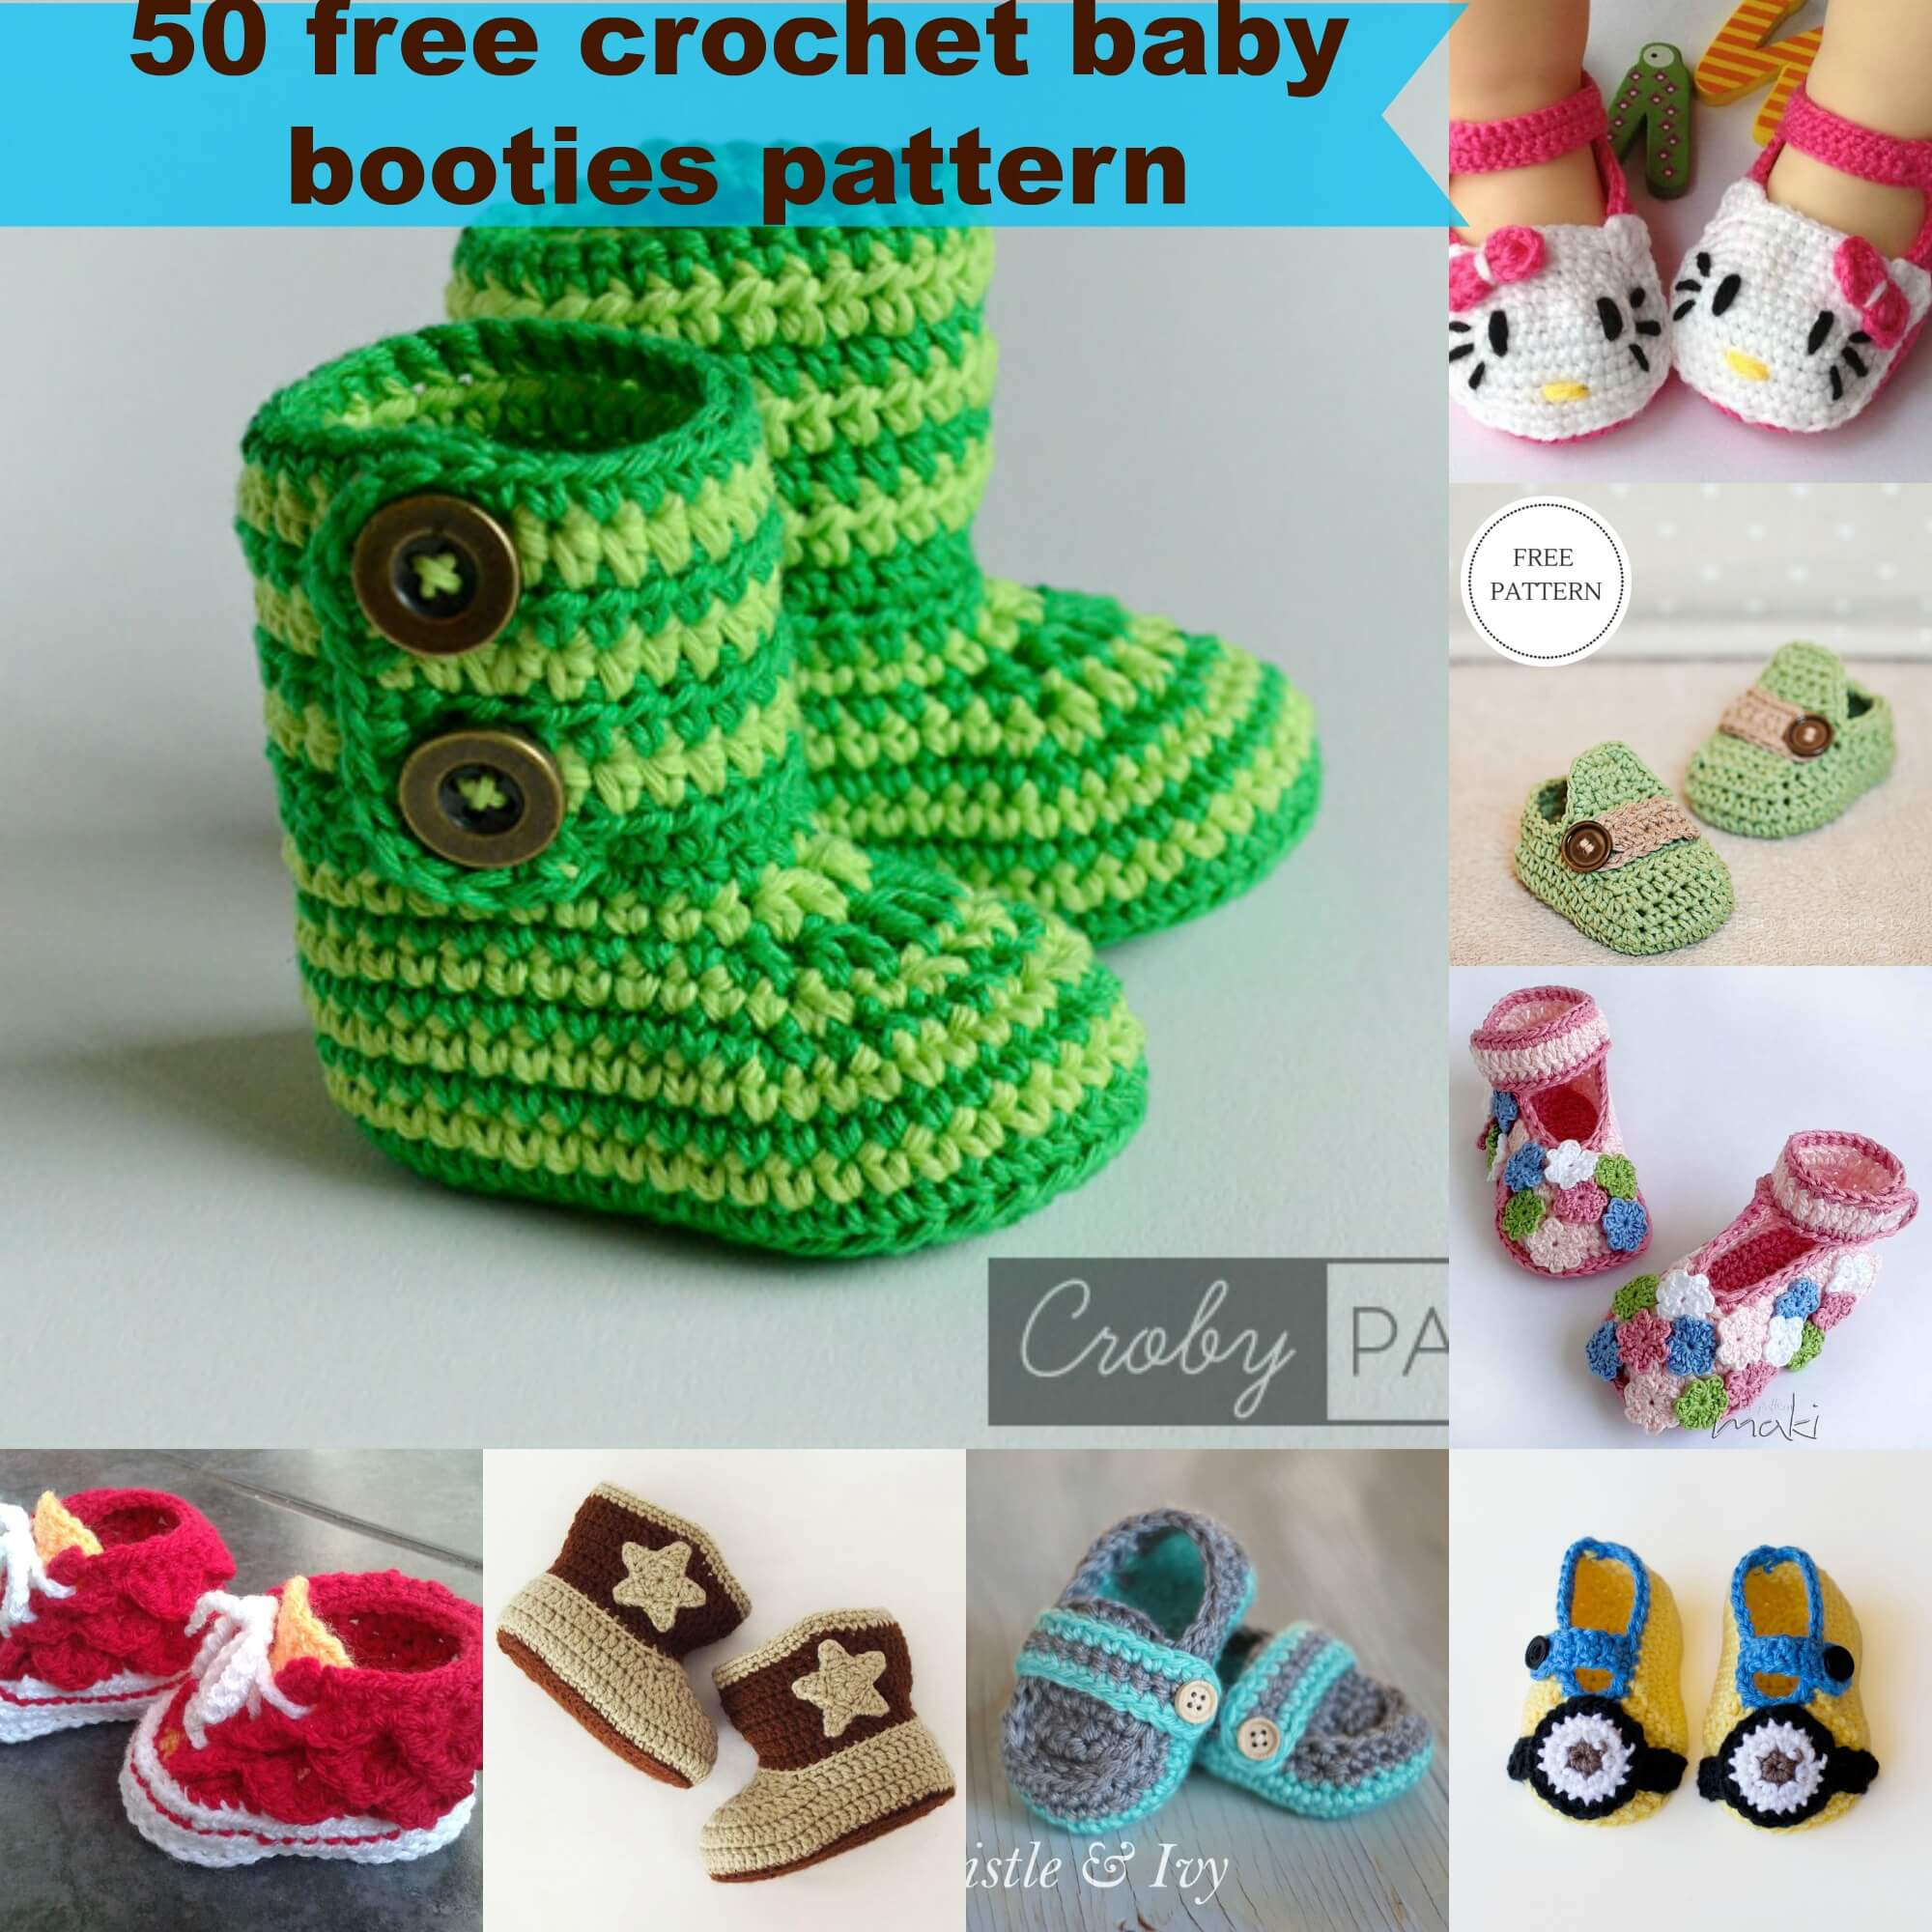 50 free crochet baby booties pattern by jennyandteddy